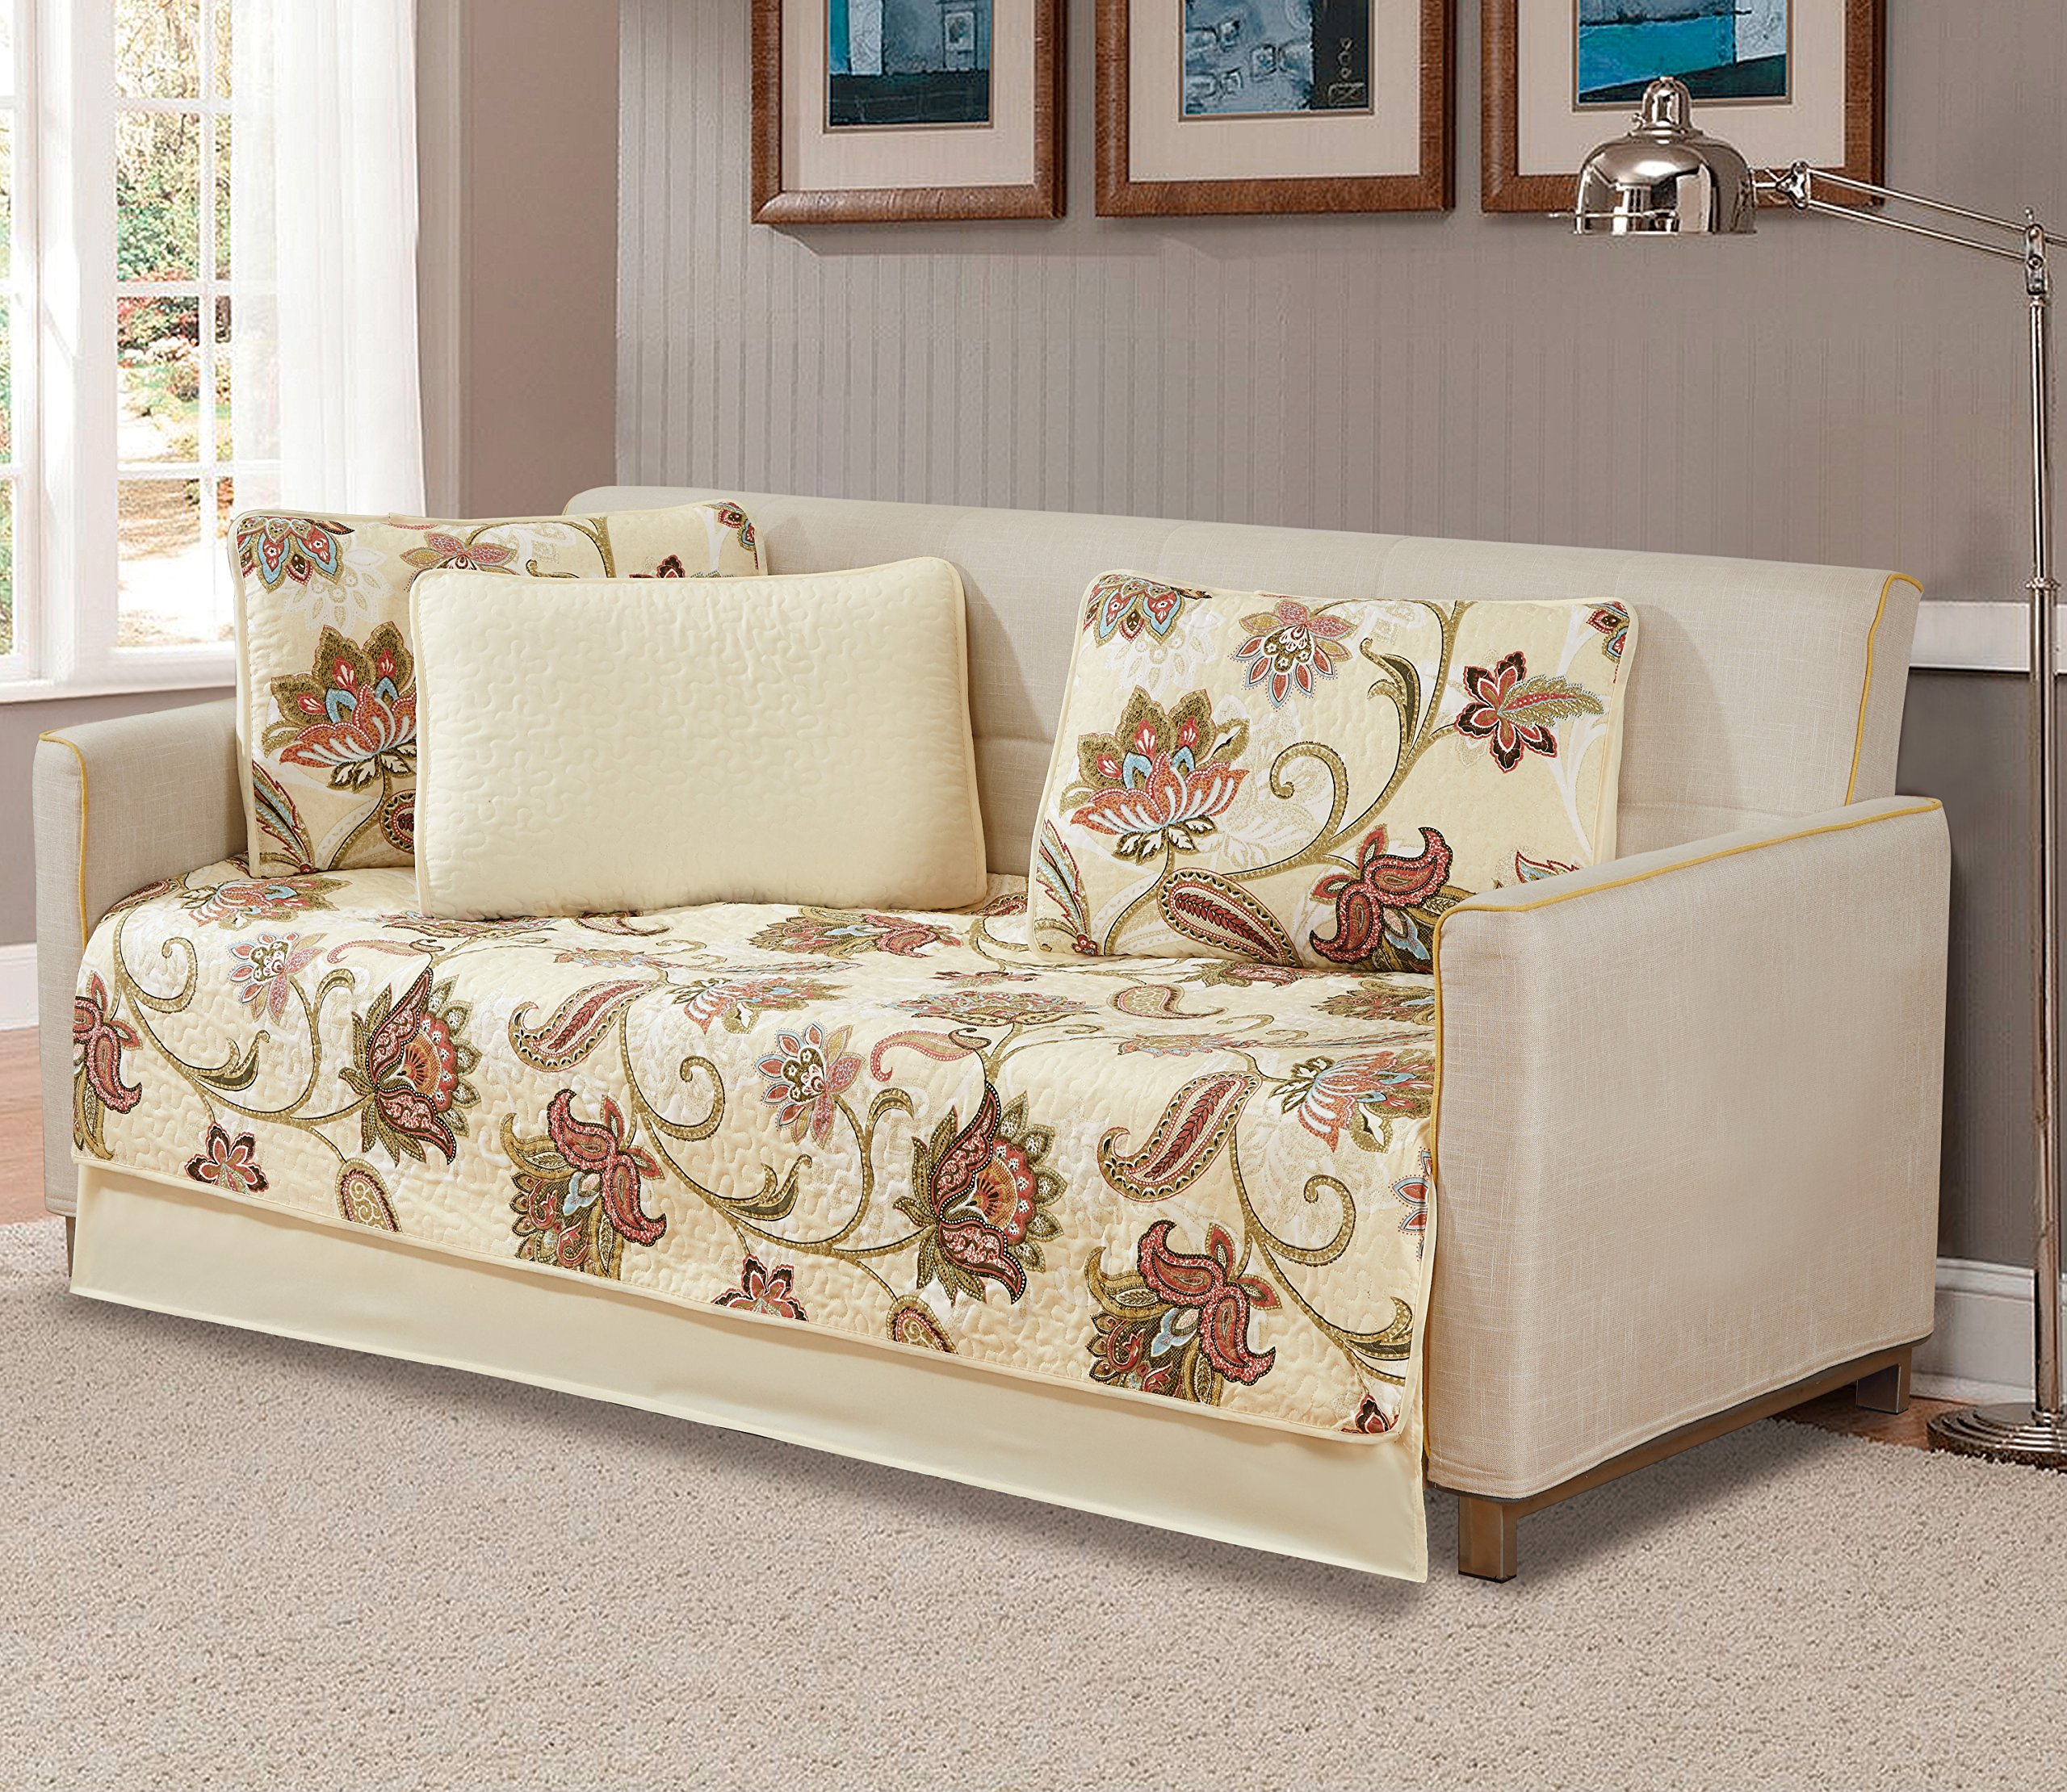 5pc Daybed Cover Set Quilted Bedspread Floral Beige Green Light Blue New